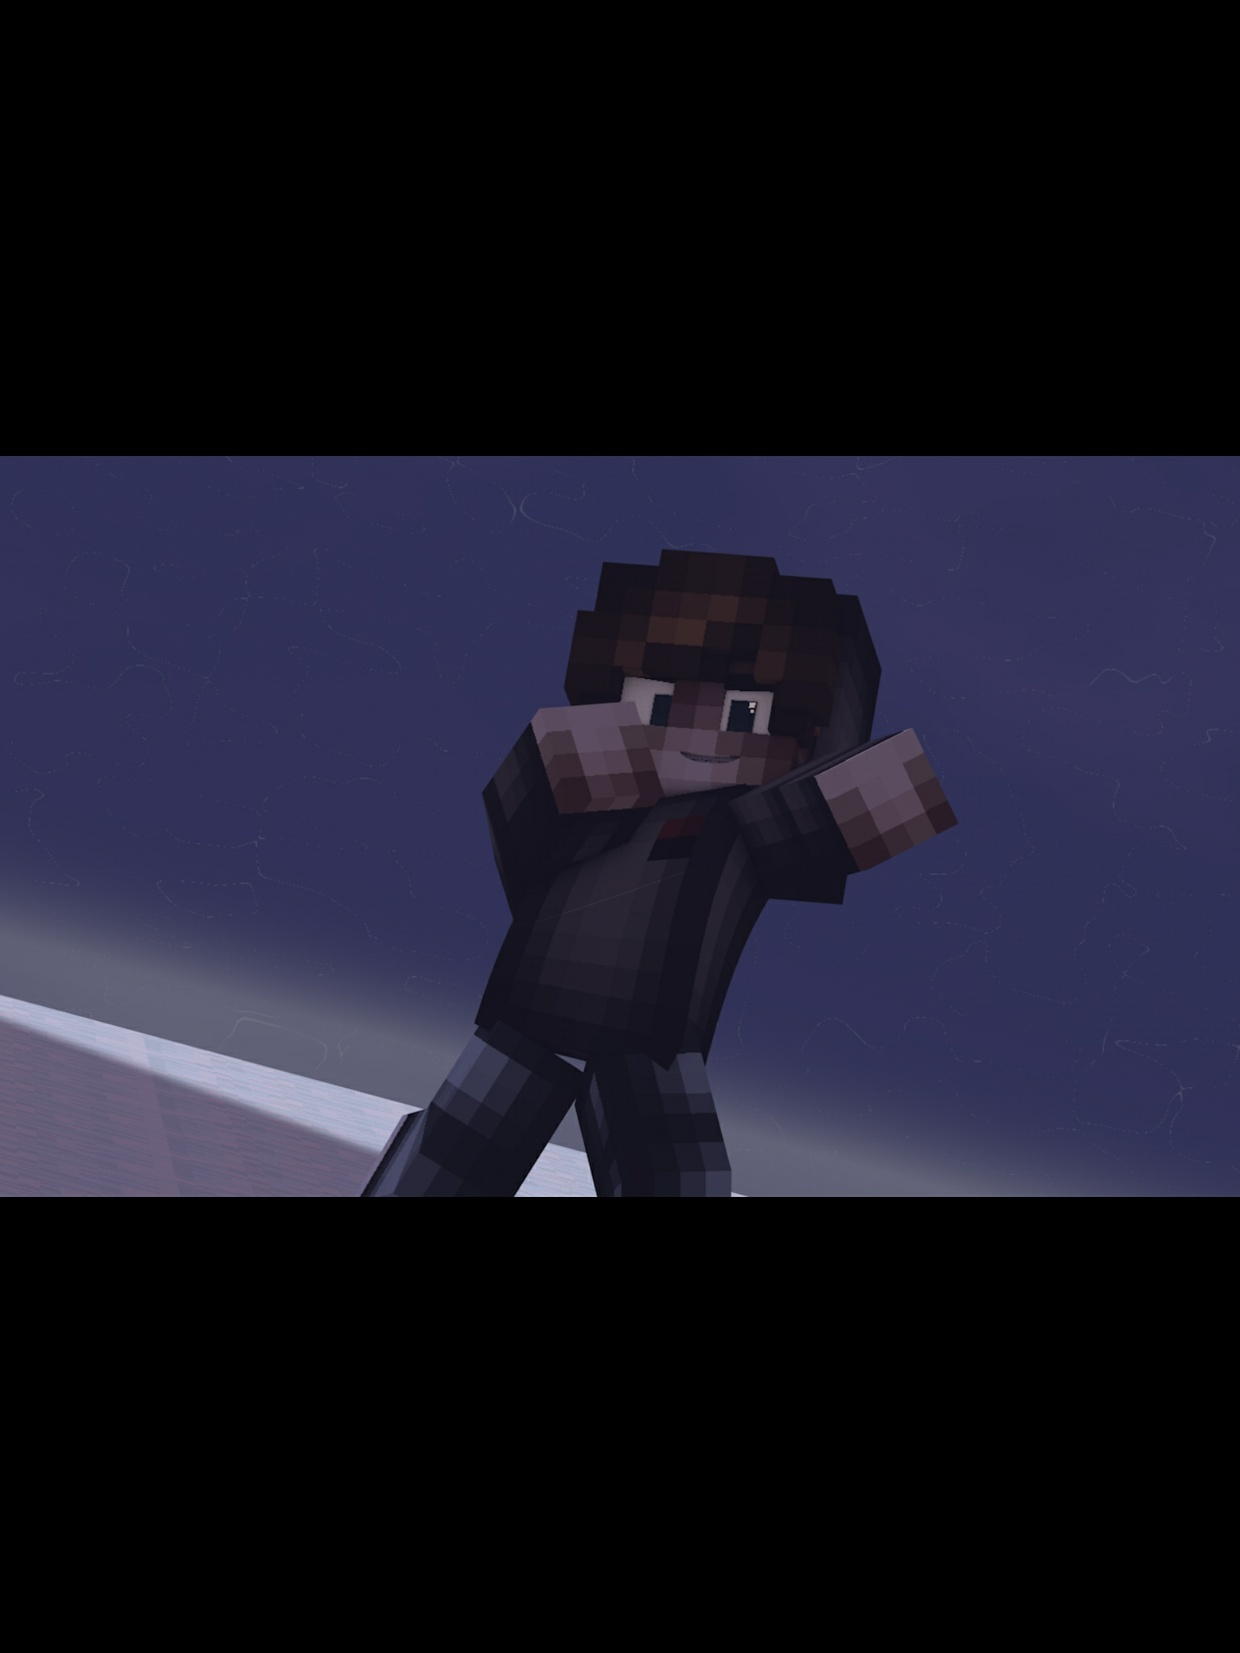 Minecraft Animated Intro (Taking :: 2 Orders)